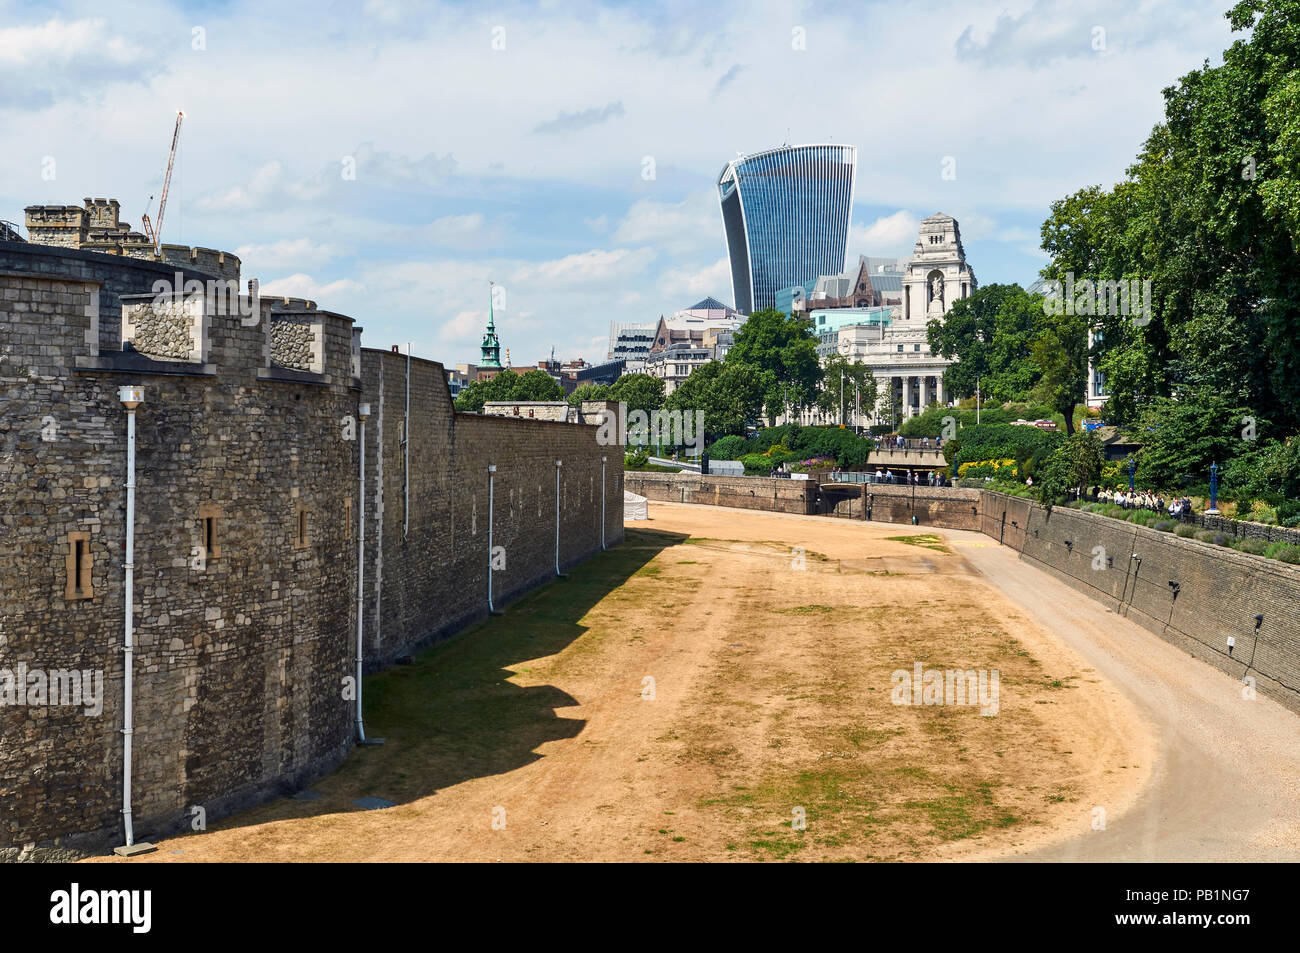 Parched lawns around the Tower of London UK during the 2018 heatwave, with the Walkie Talkie Tower in the background Stock Photo